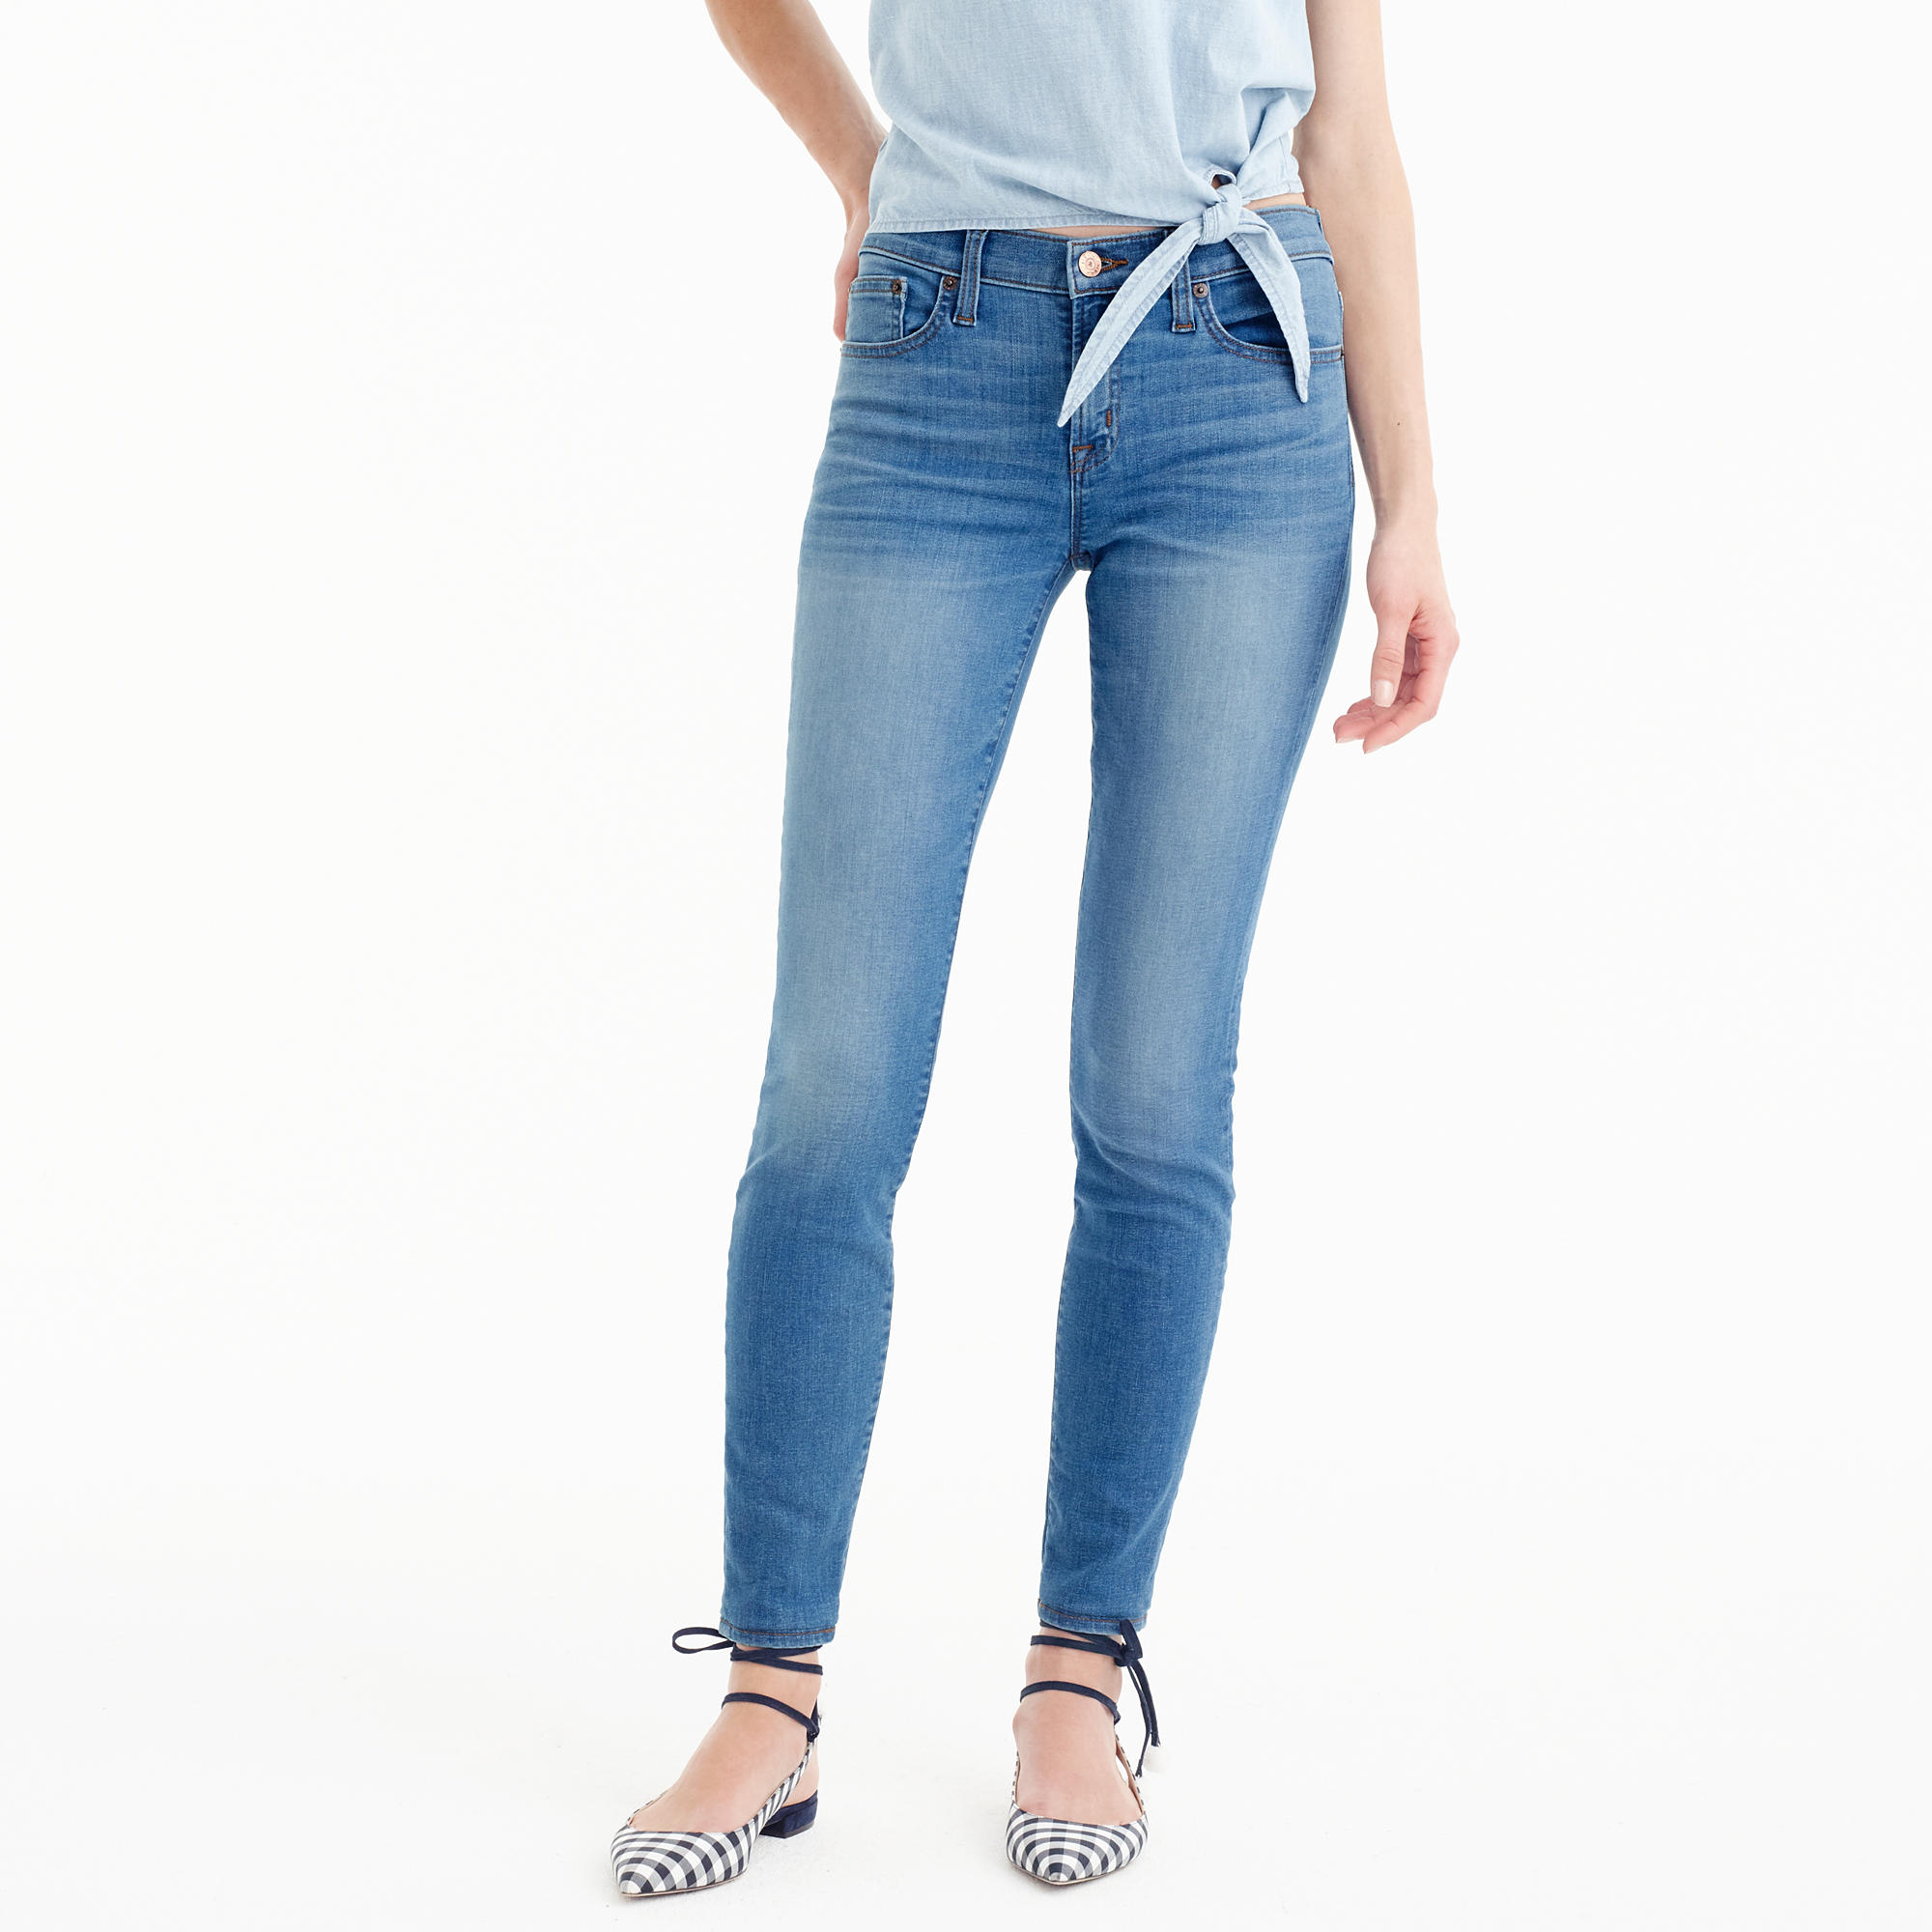 Women's Skinny Jeans : The Denim Collection | J.Crew